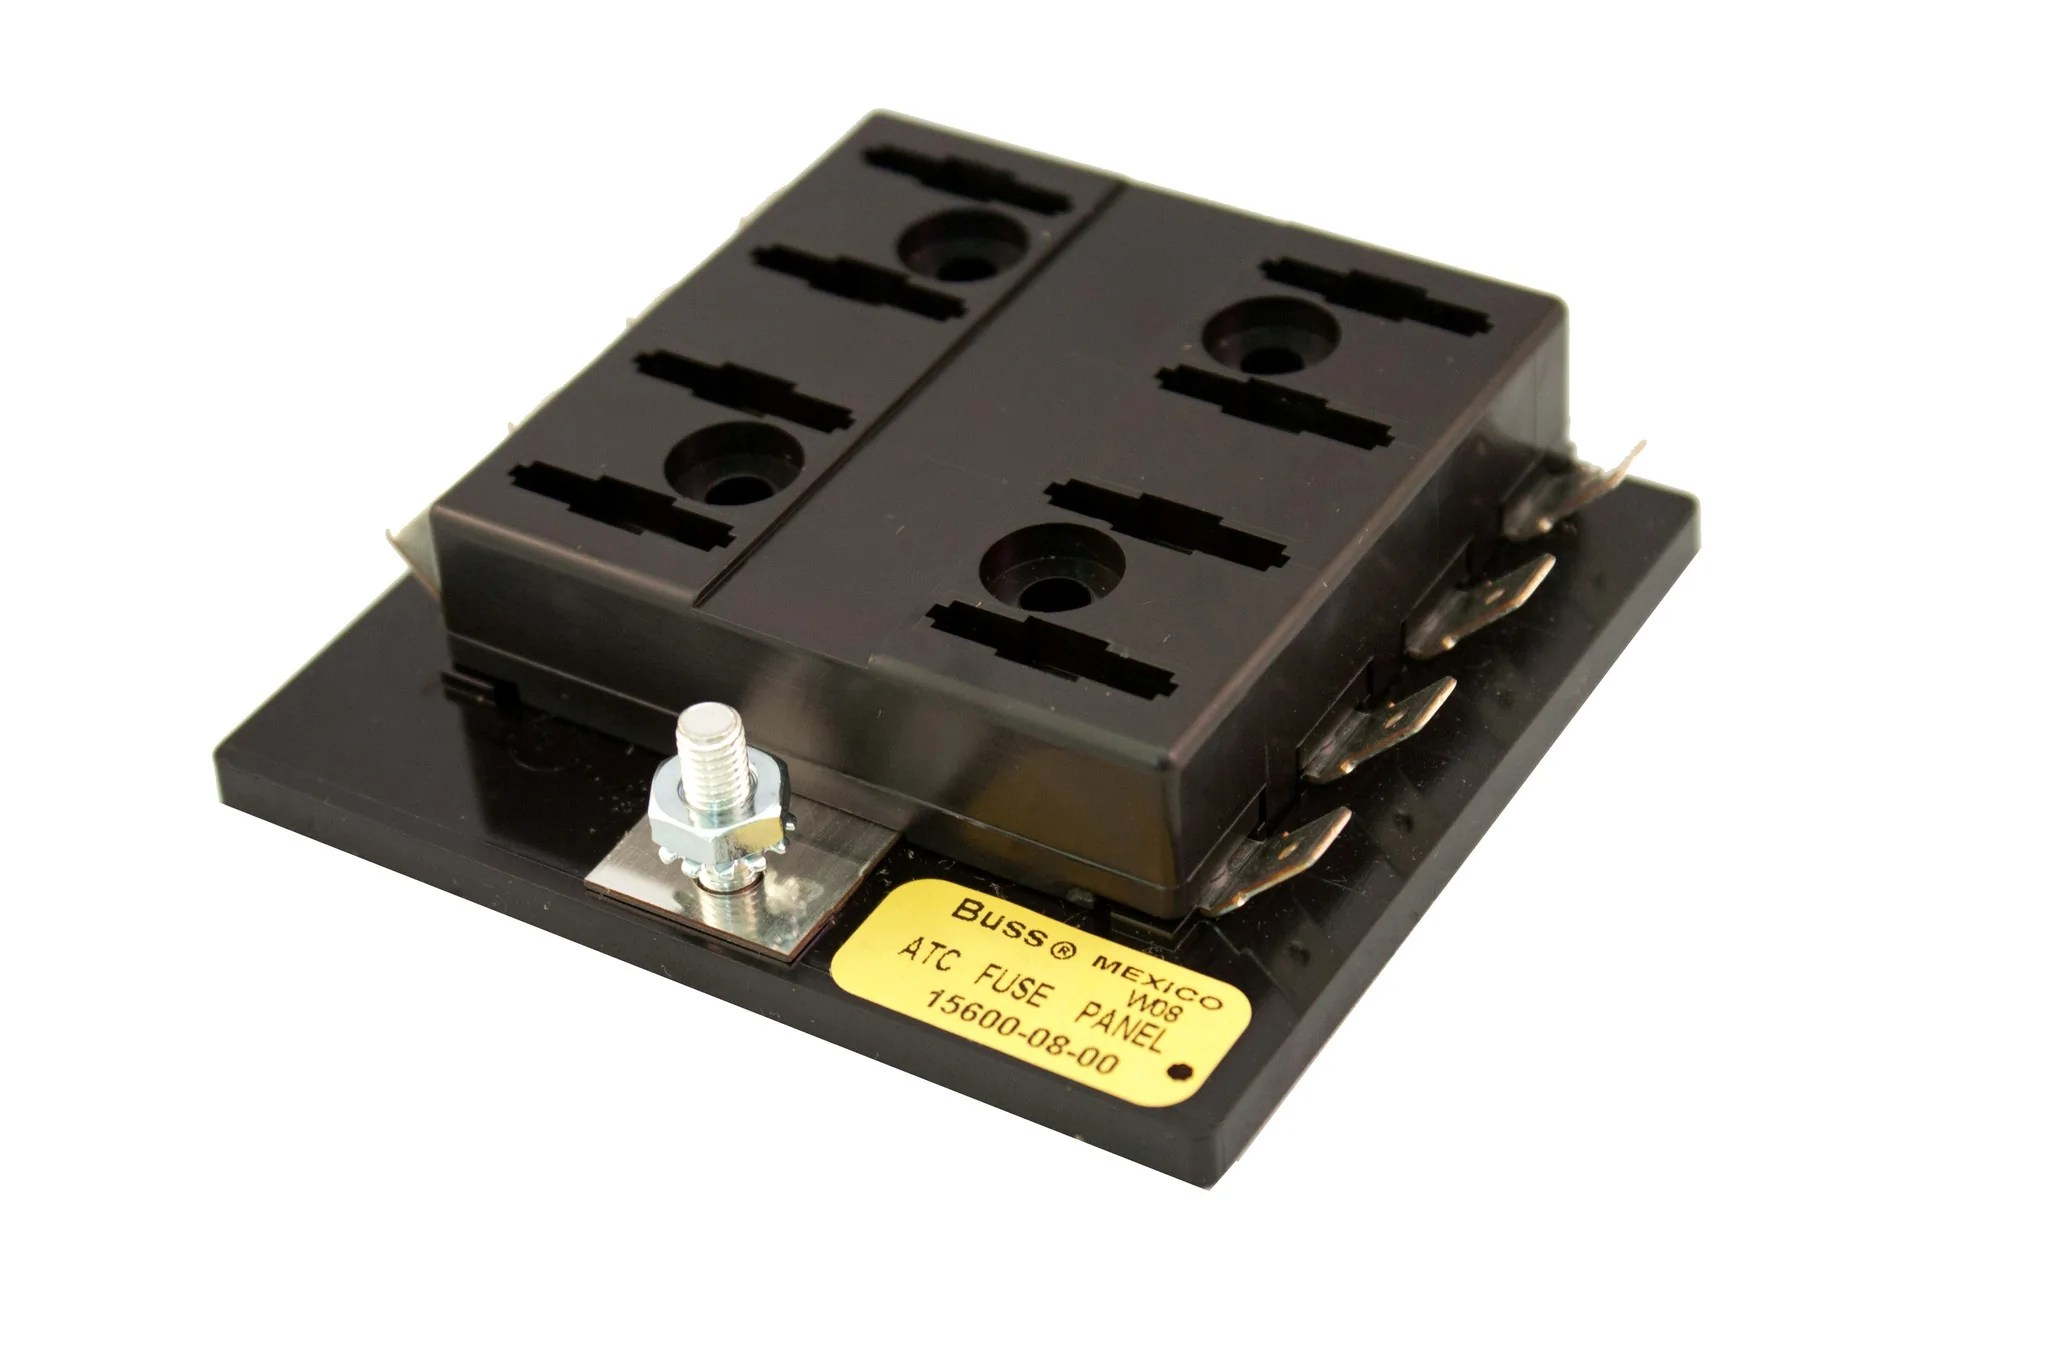 medium resolution of part 15600 08 20 bussmann fuse block for atof atc fuses or blade ty road runner connect inc